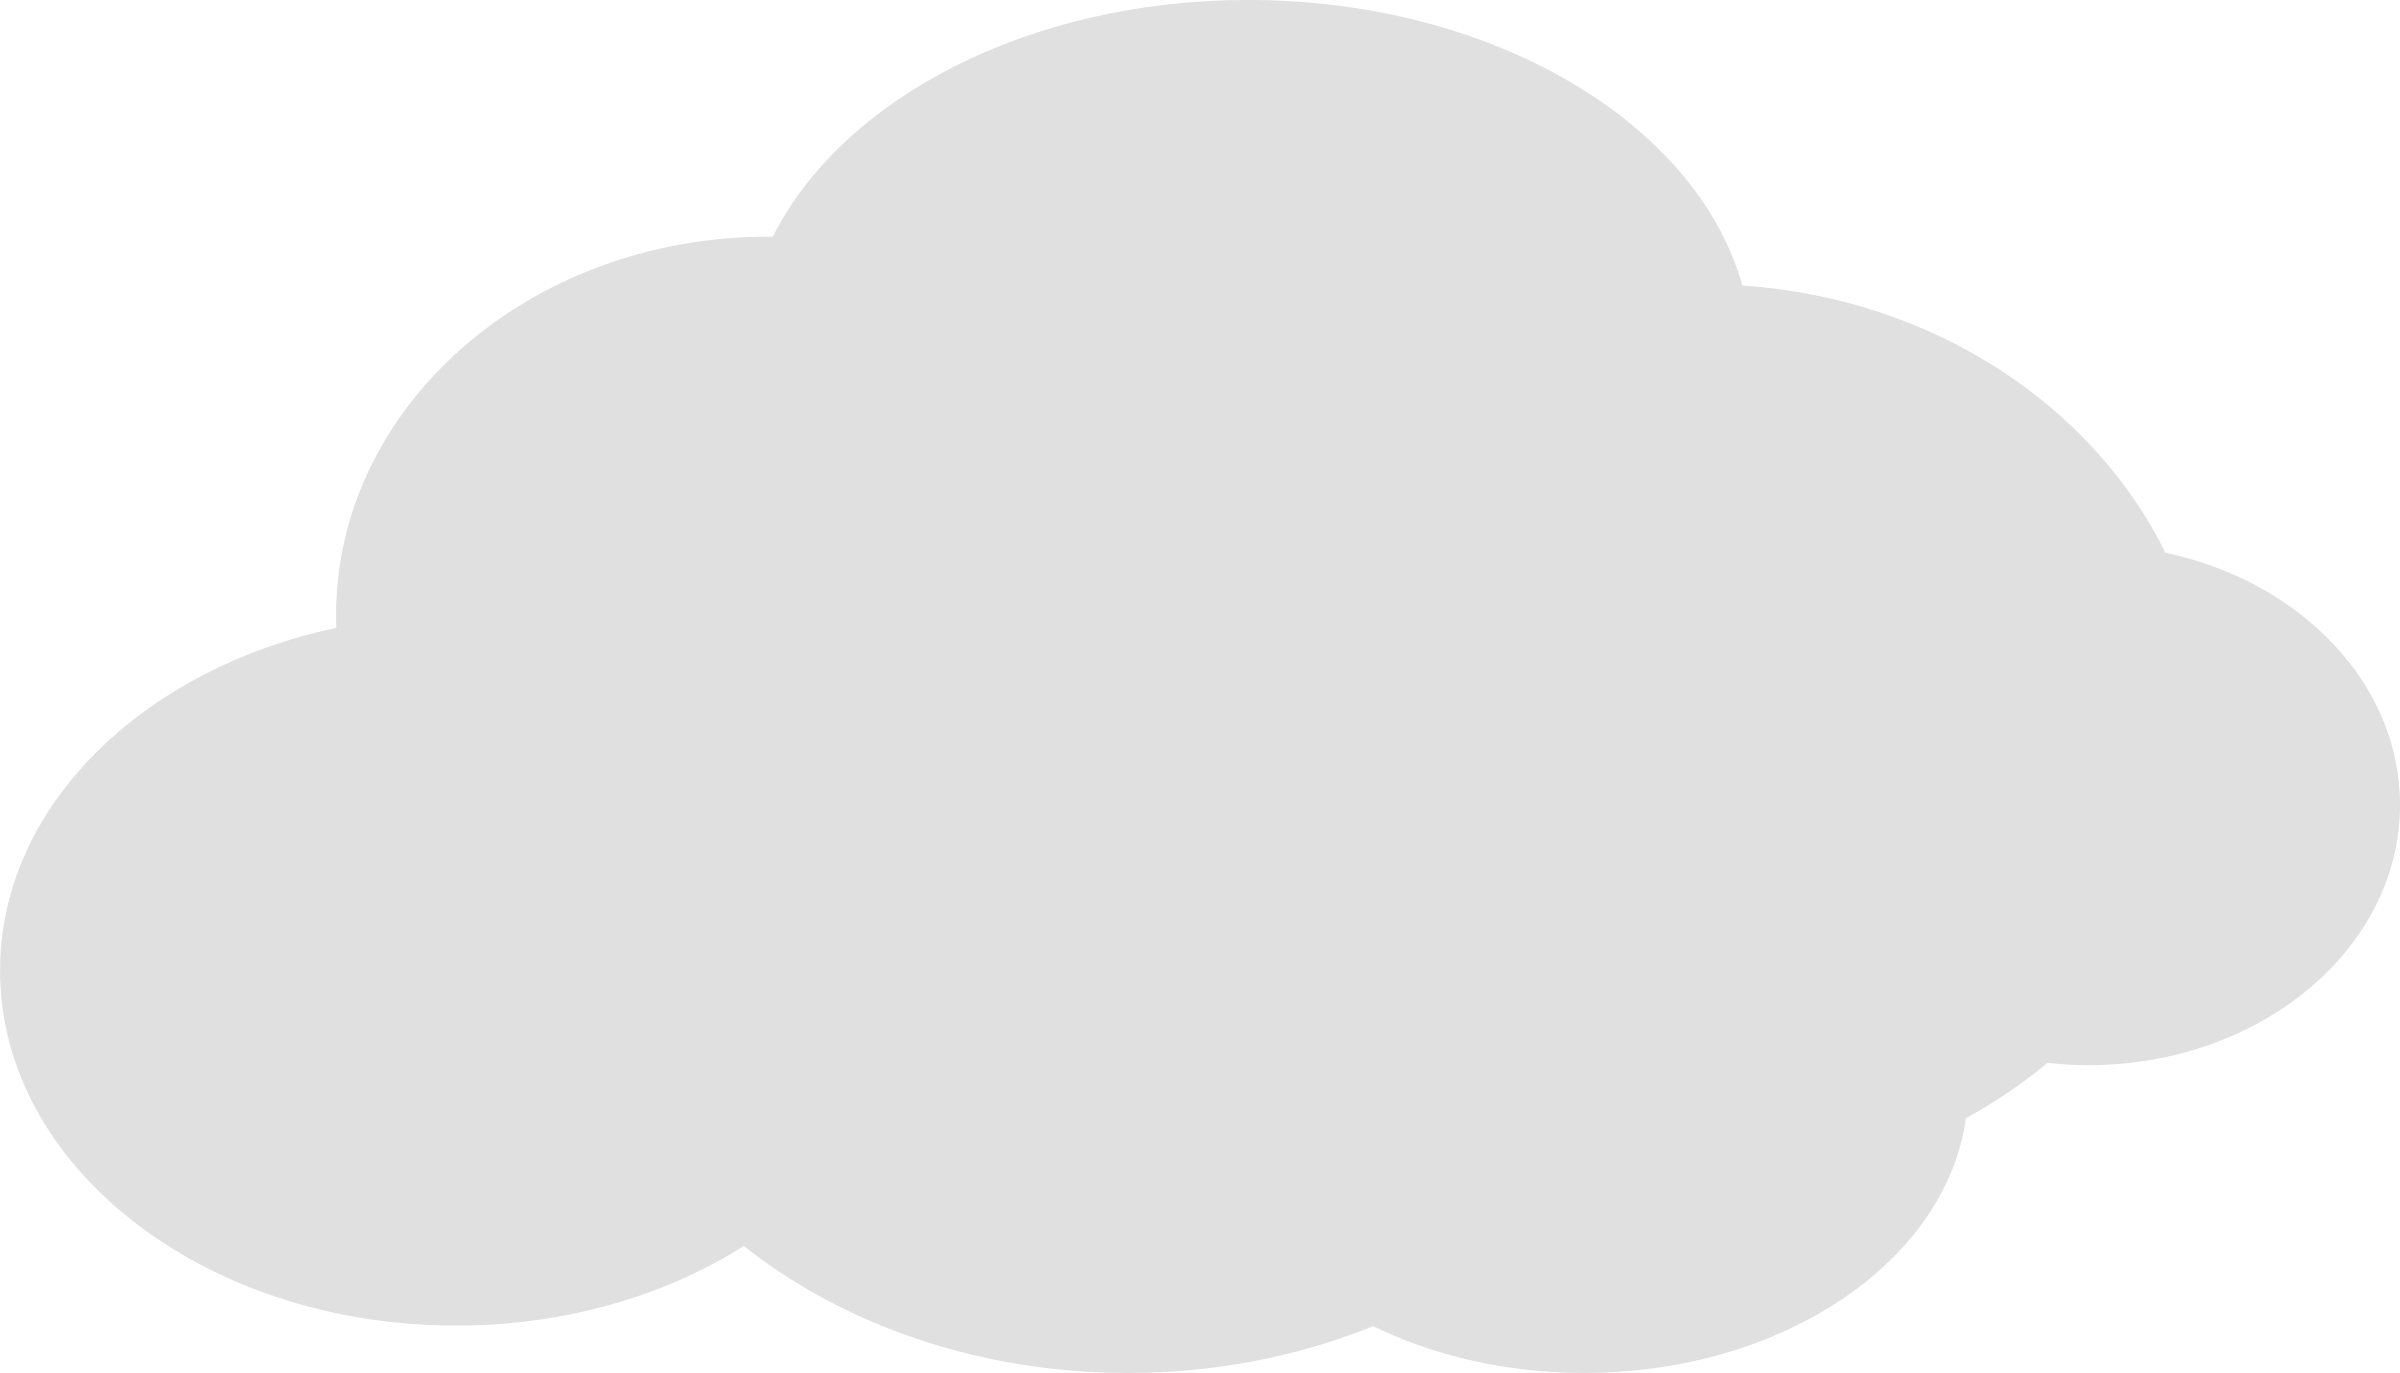 Cloud clipart simple. Icon big image png